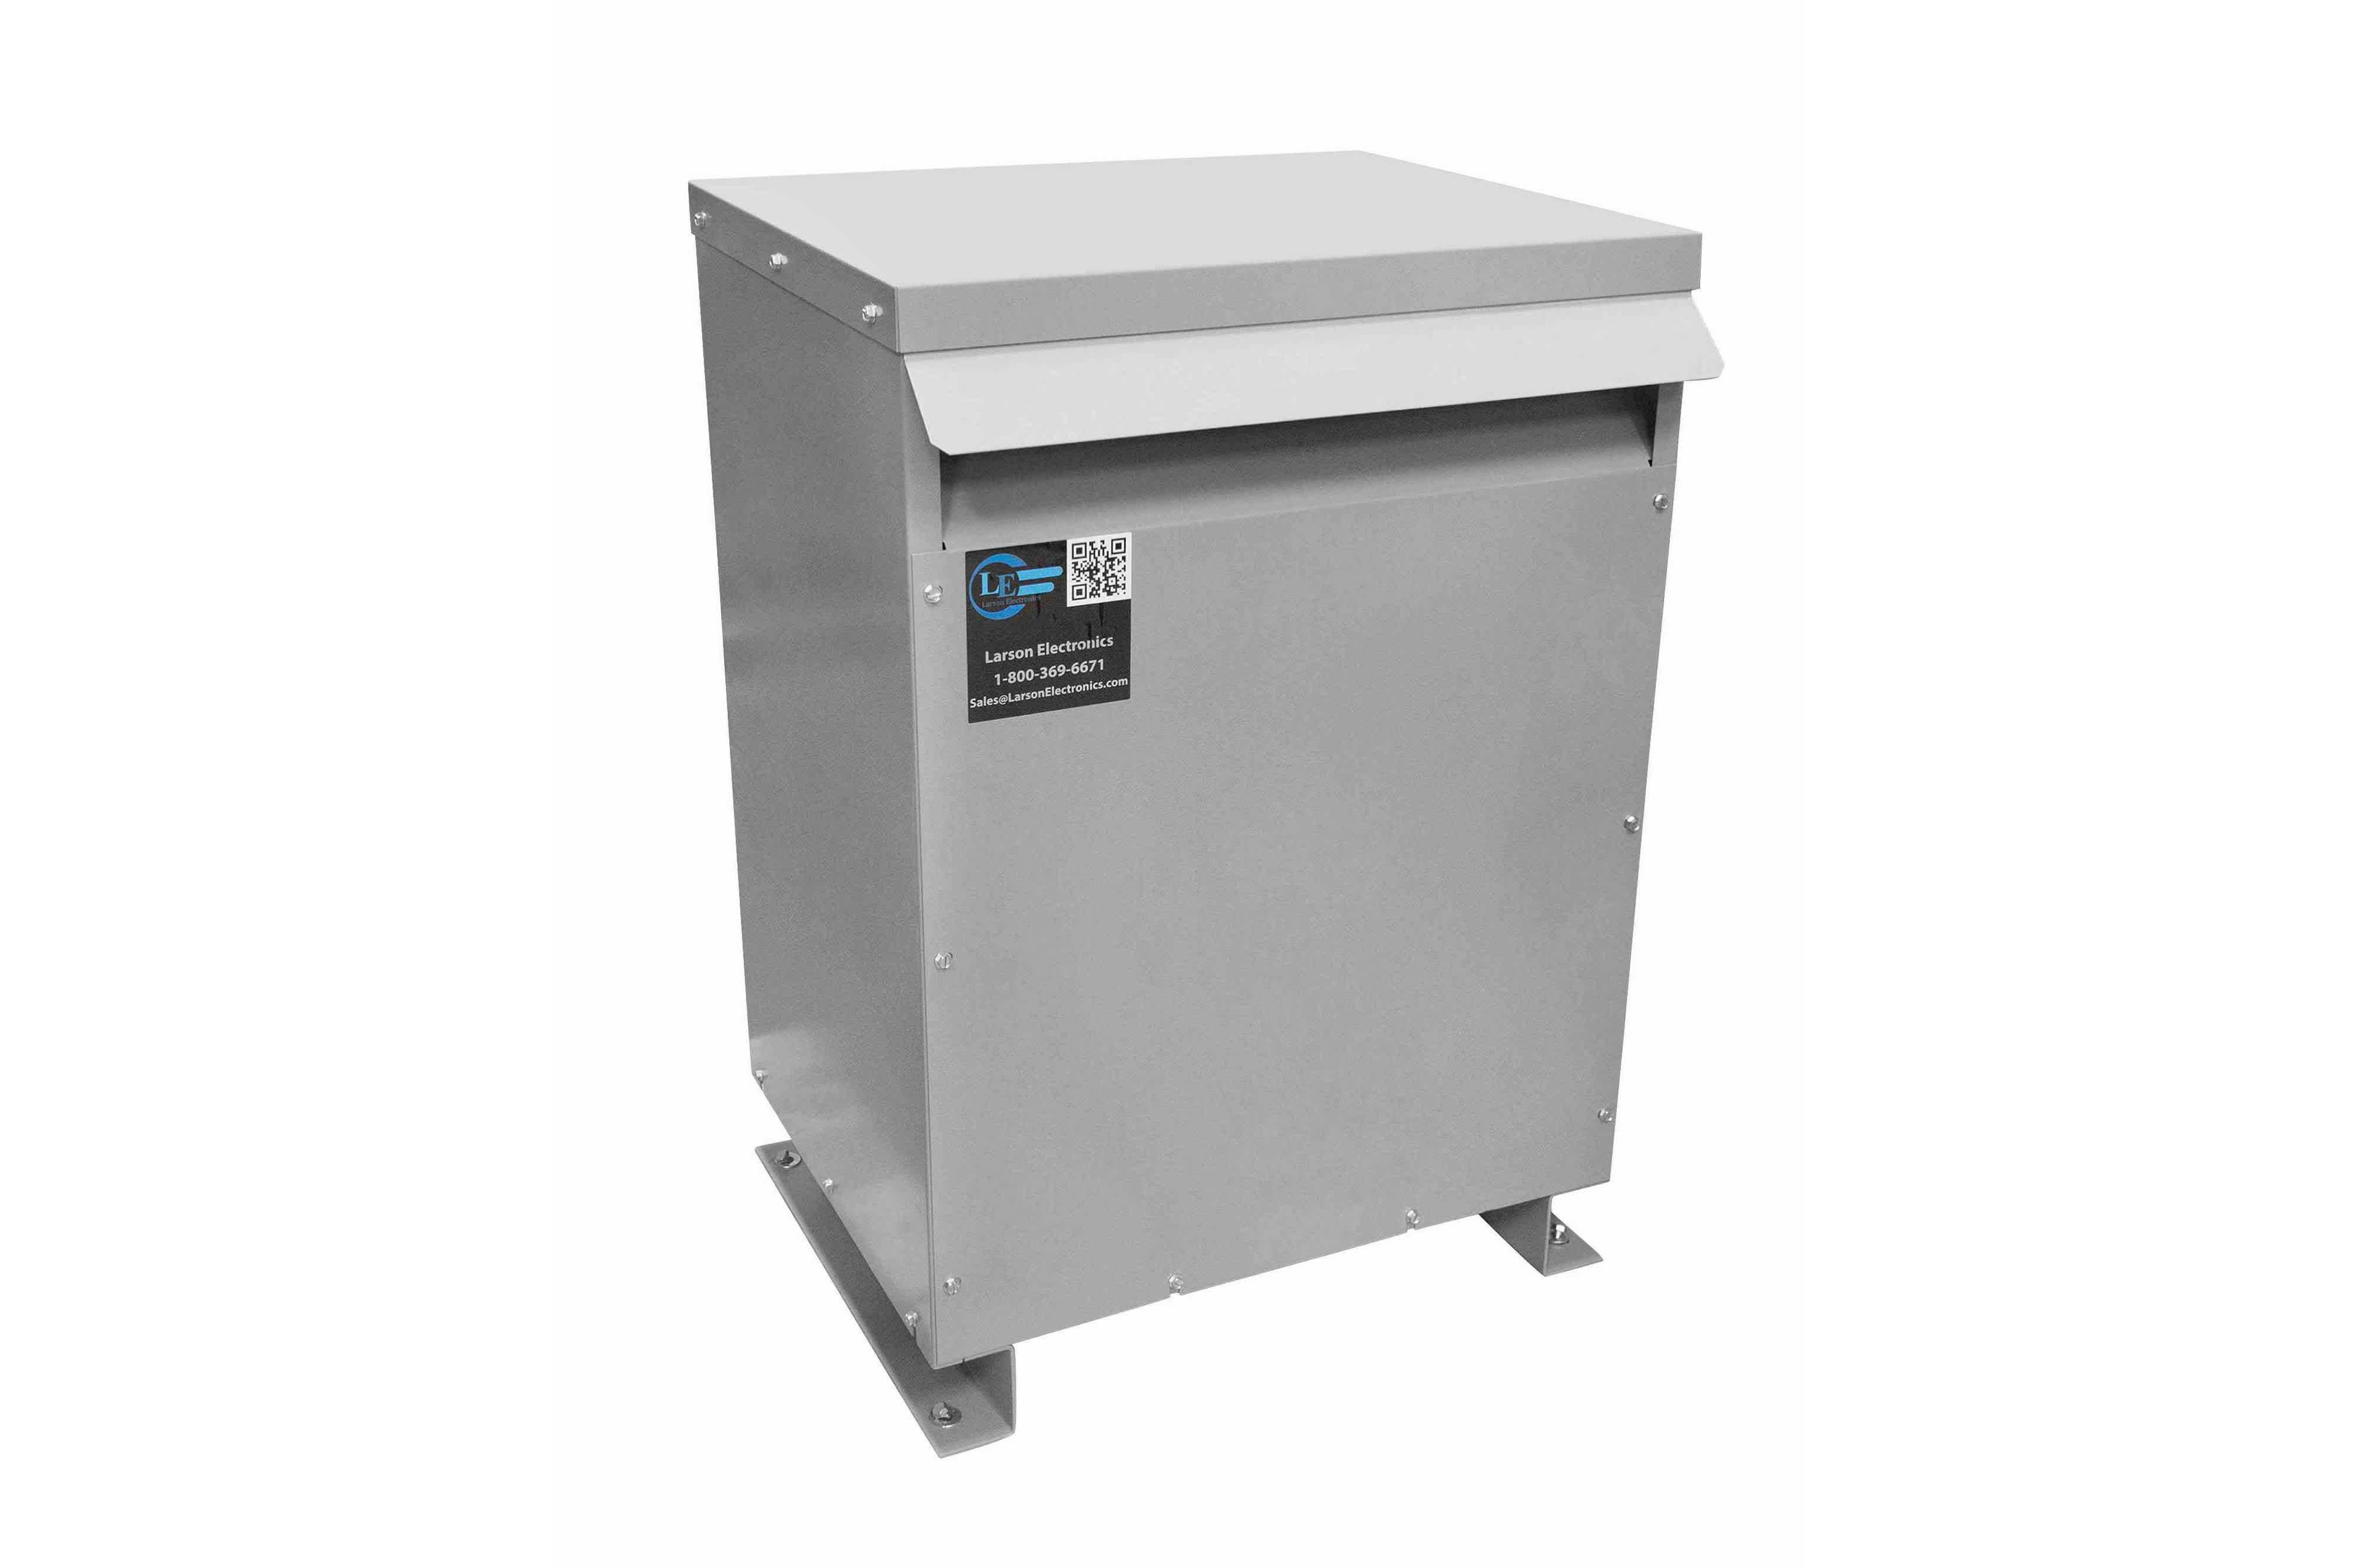 400 kVA 3PH Isolation Transformer, 240V Wye Primary, 480V Delta Secondary, N3R, Ventilated, 60 Hz